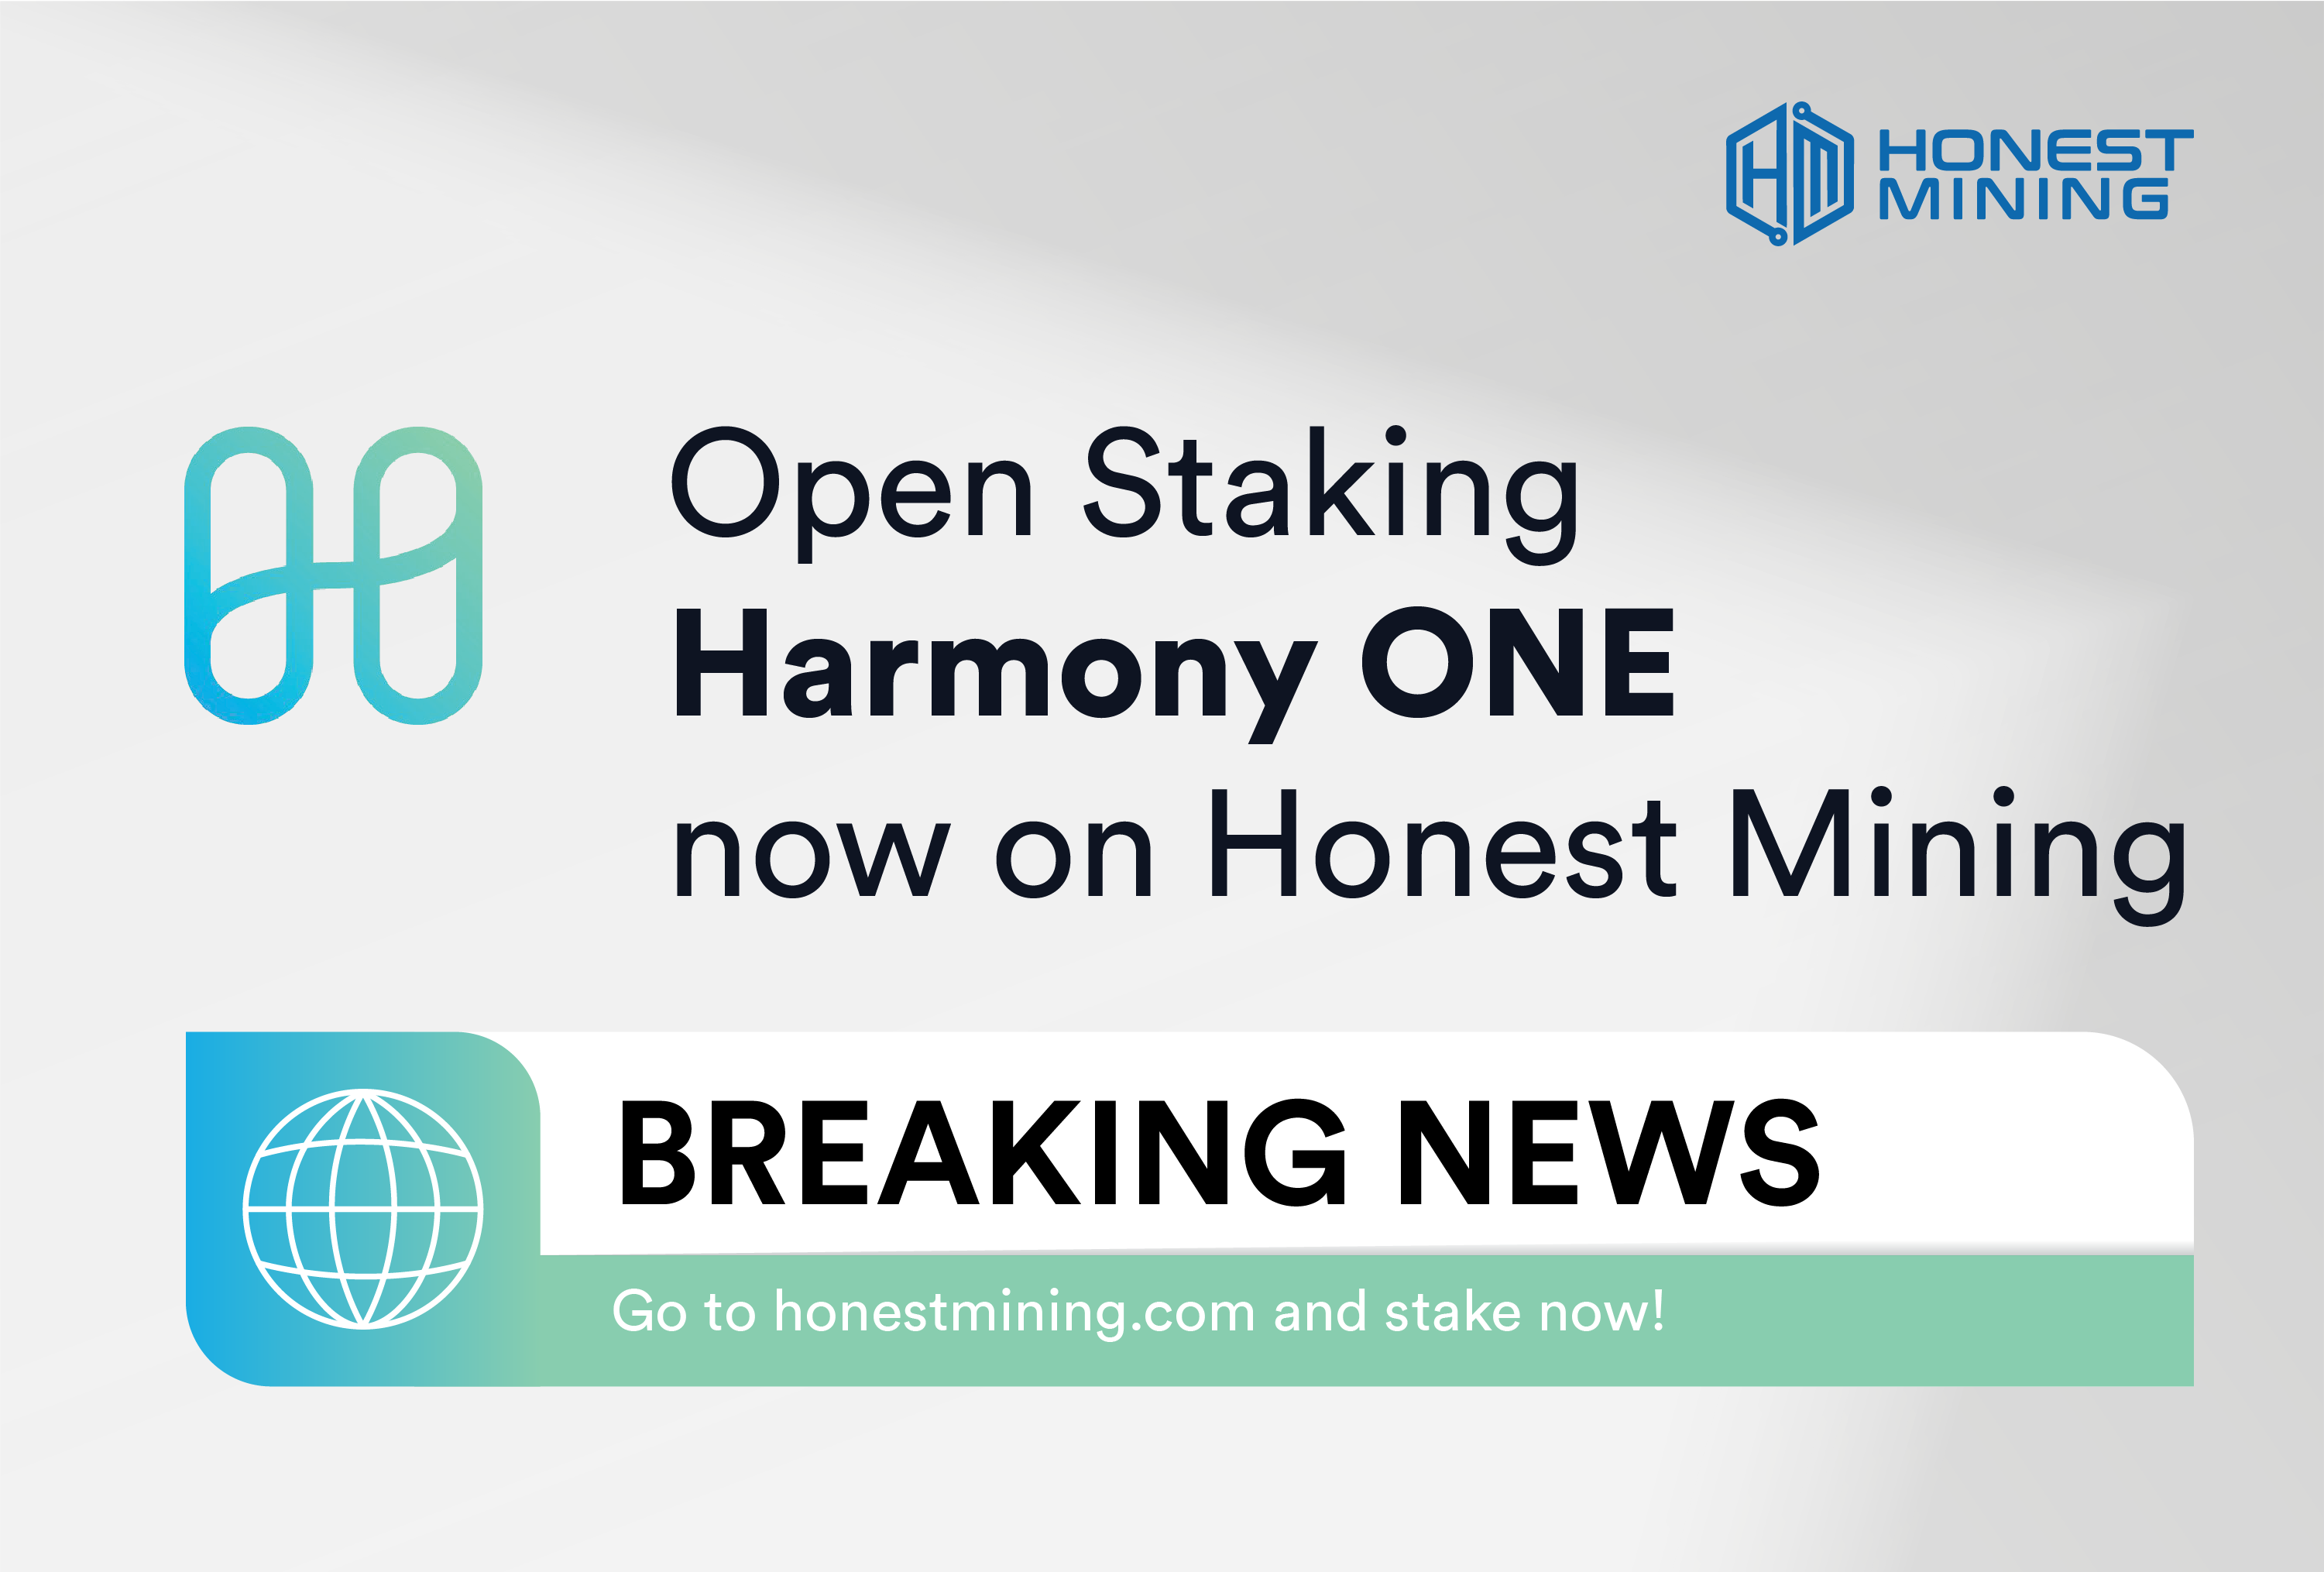 New Harmony ONE open staking on Honest Mining